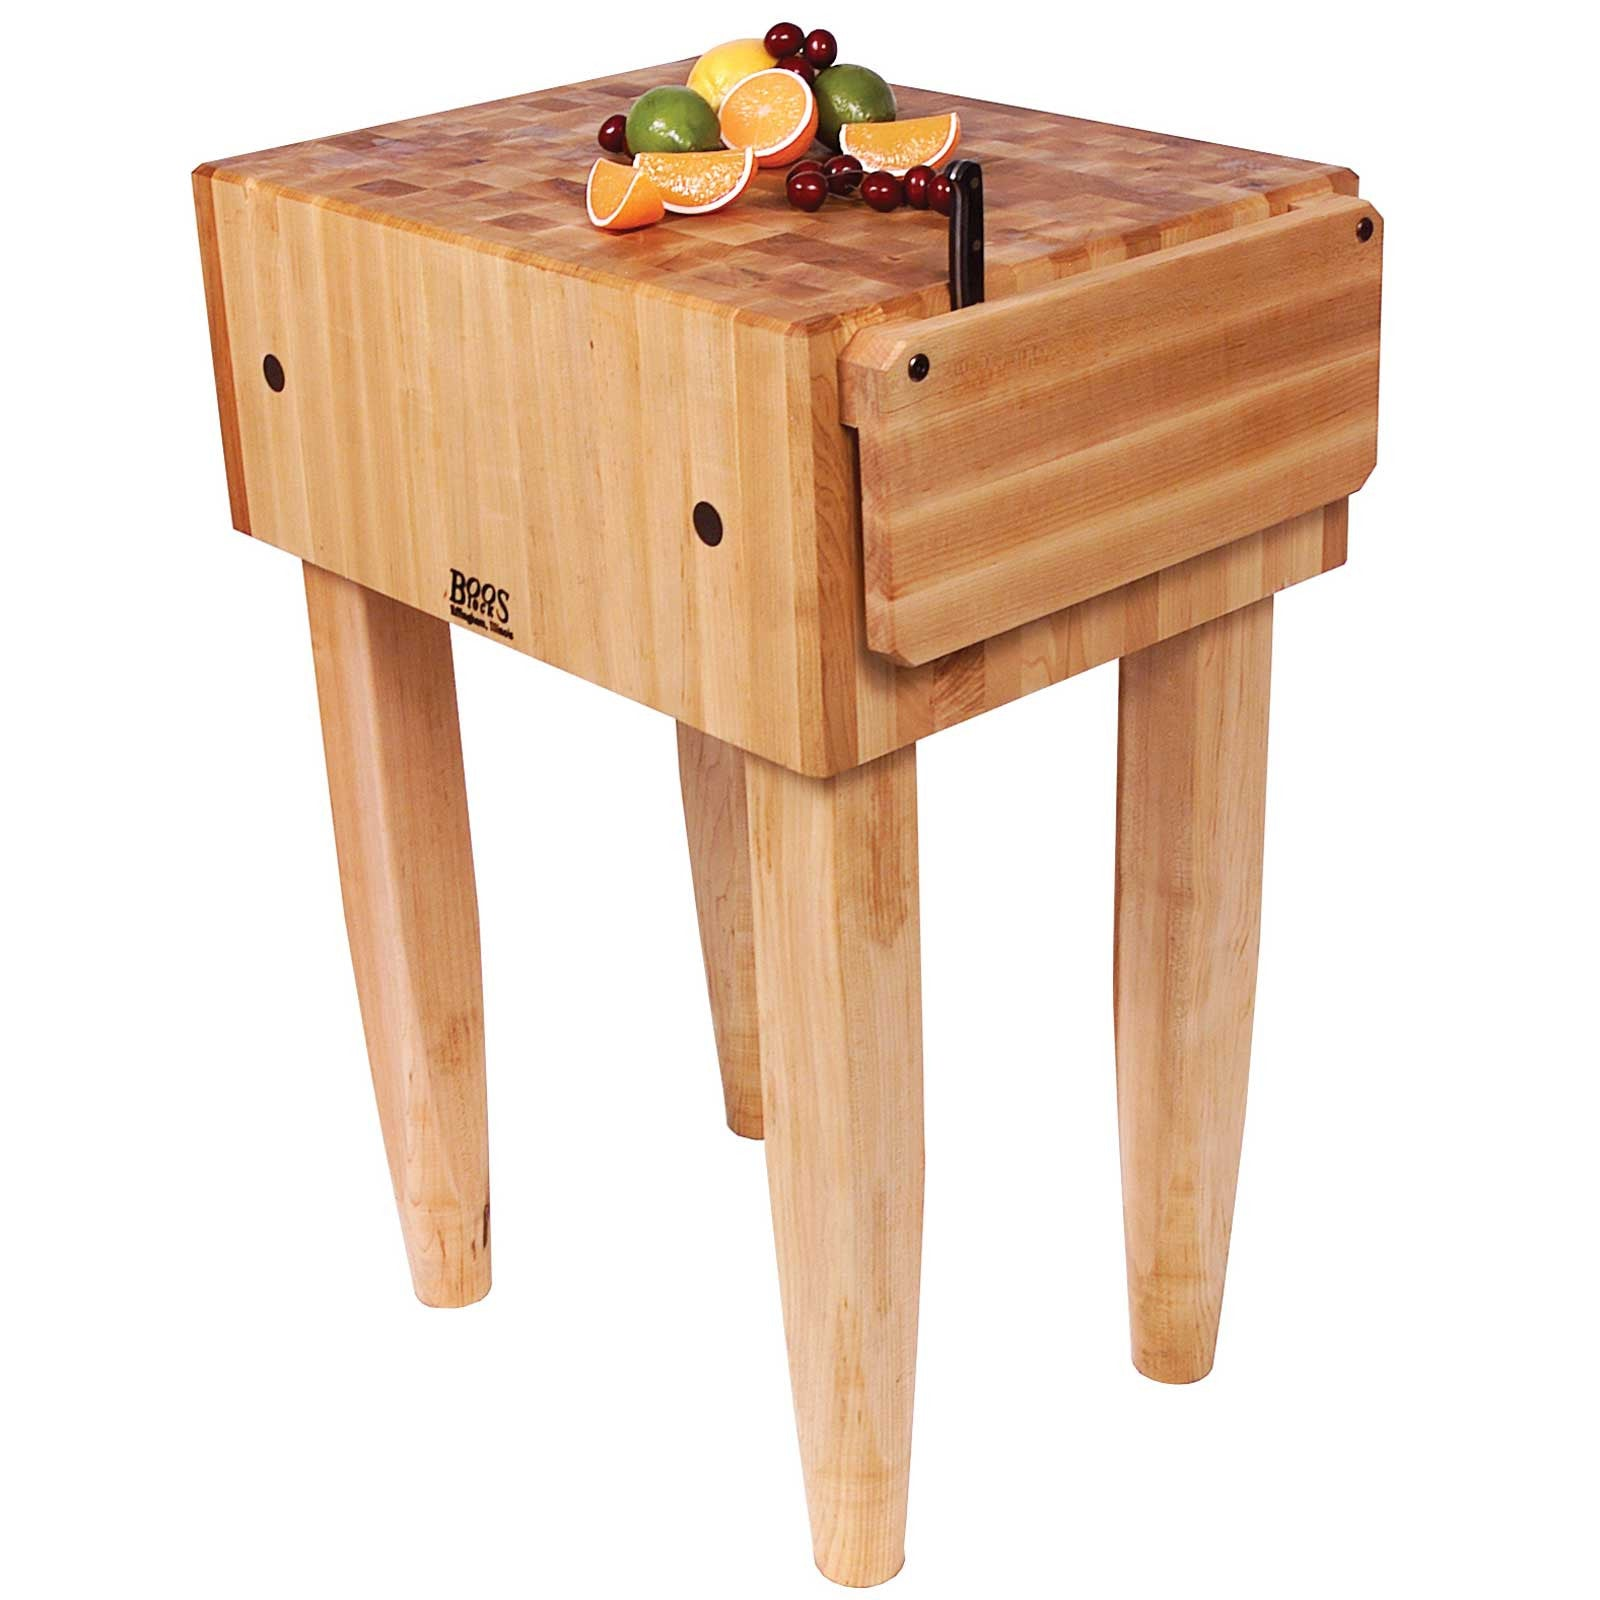 "John Boos 30"" x 24"" x 10"" Maple Top PCA Butcher Block"